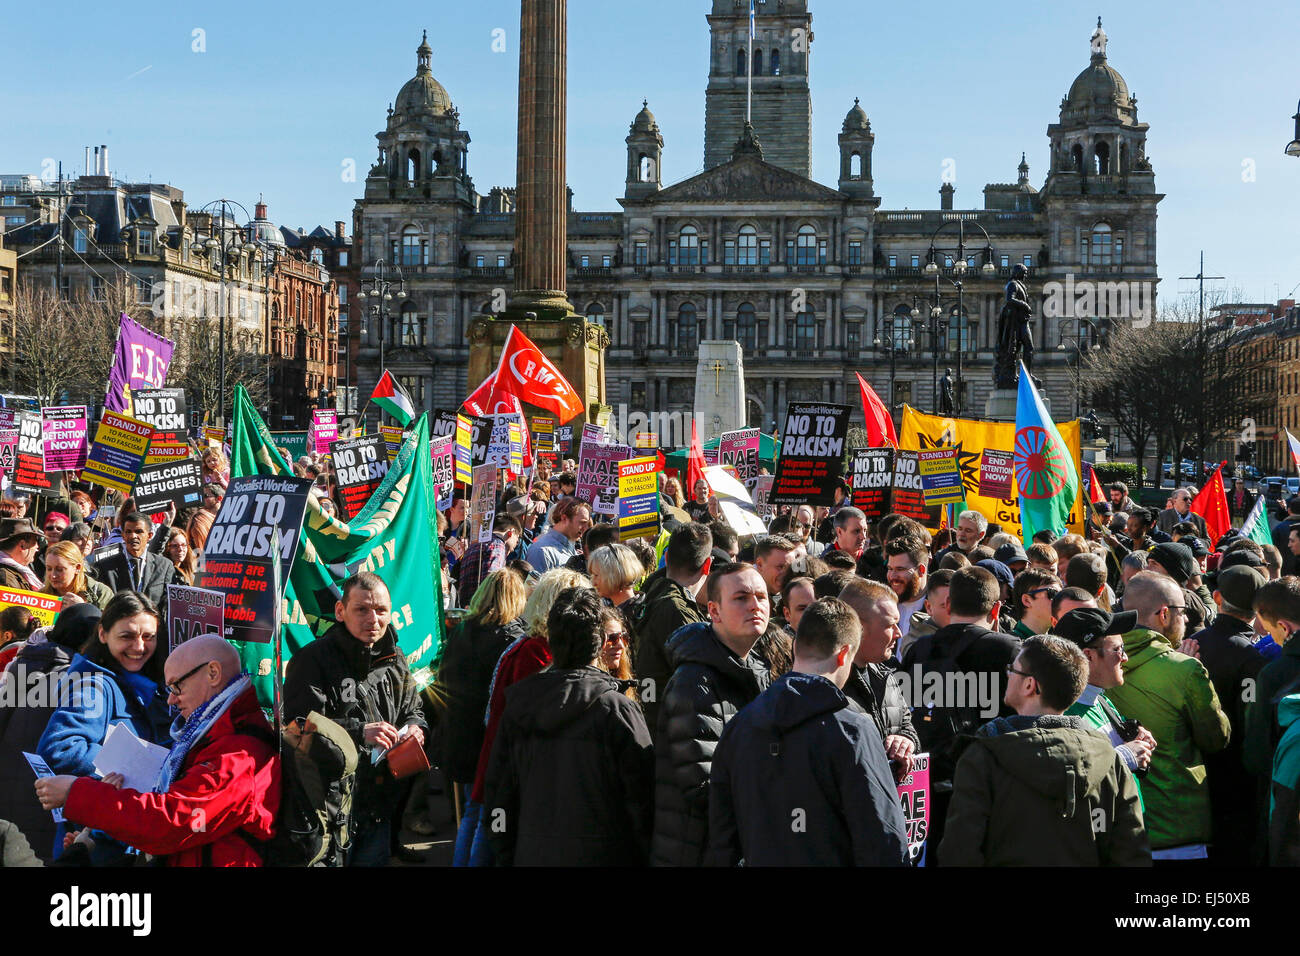 Glasgow, Scotland, UK. 21st March, 2015. In support of the International Day for the Elimination of Racial Discrimination, - Stock Image